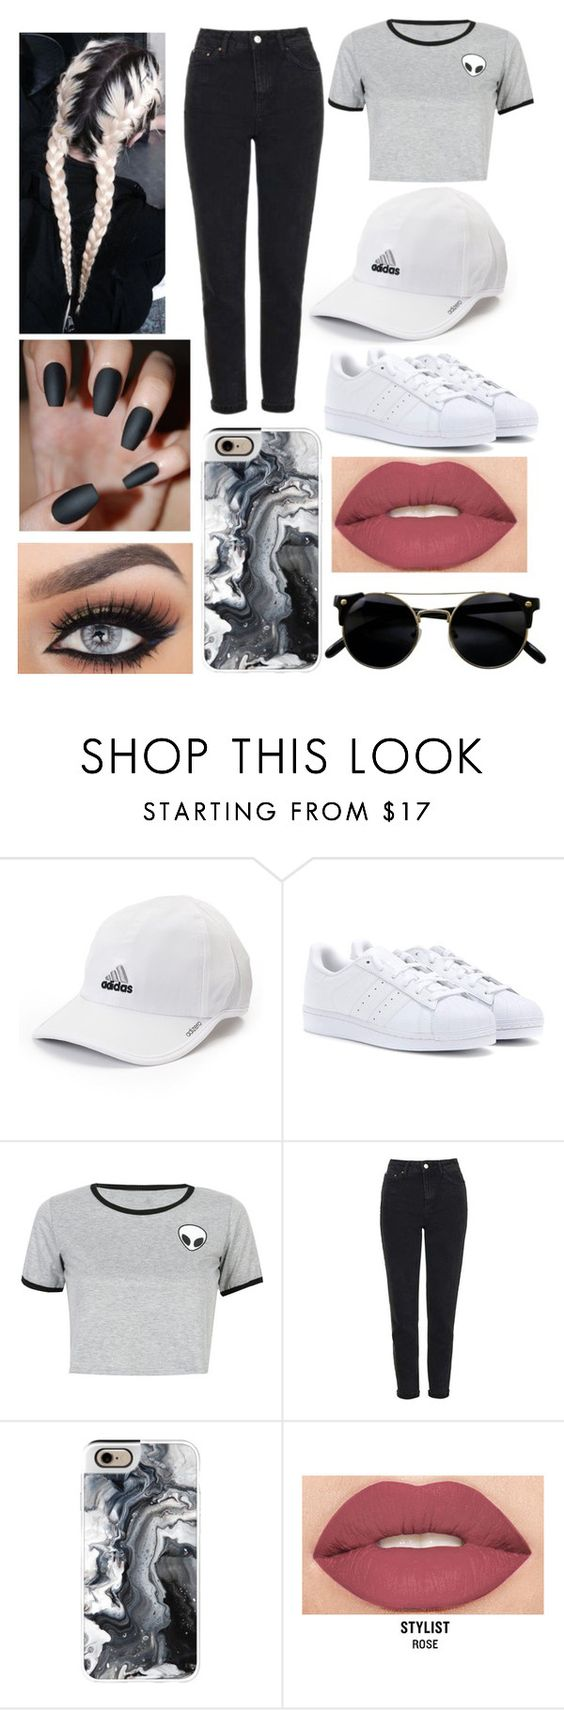 """""""And if the pain is a sound, let's slow it down"""" by itsvictoria72 ❤ liked on Polyvore featuring adidas, WithChic, Topshop, Casetify and Smashbox"""